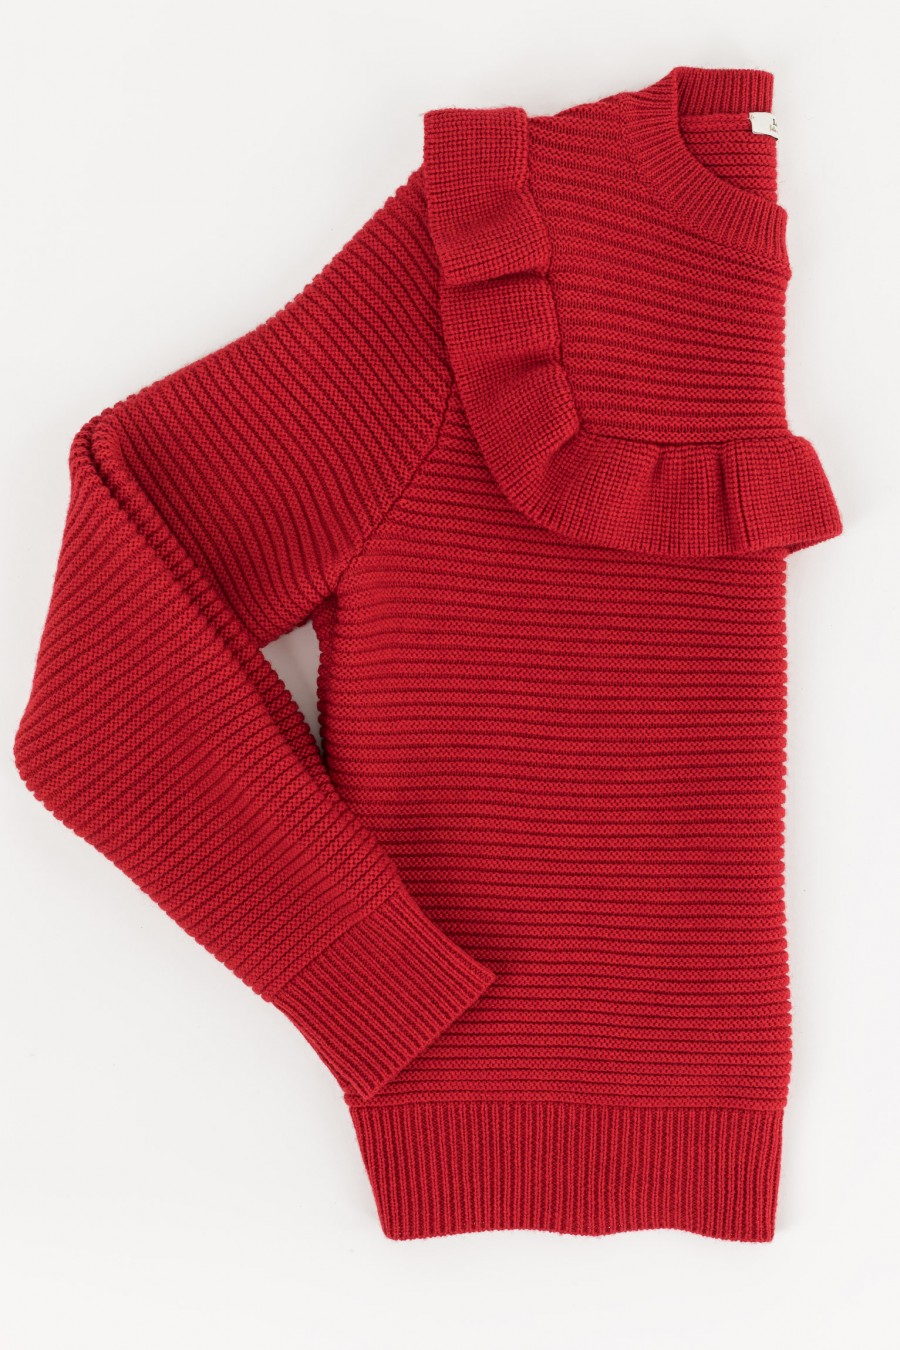 Red pullover with ruches